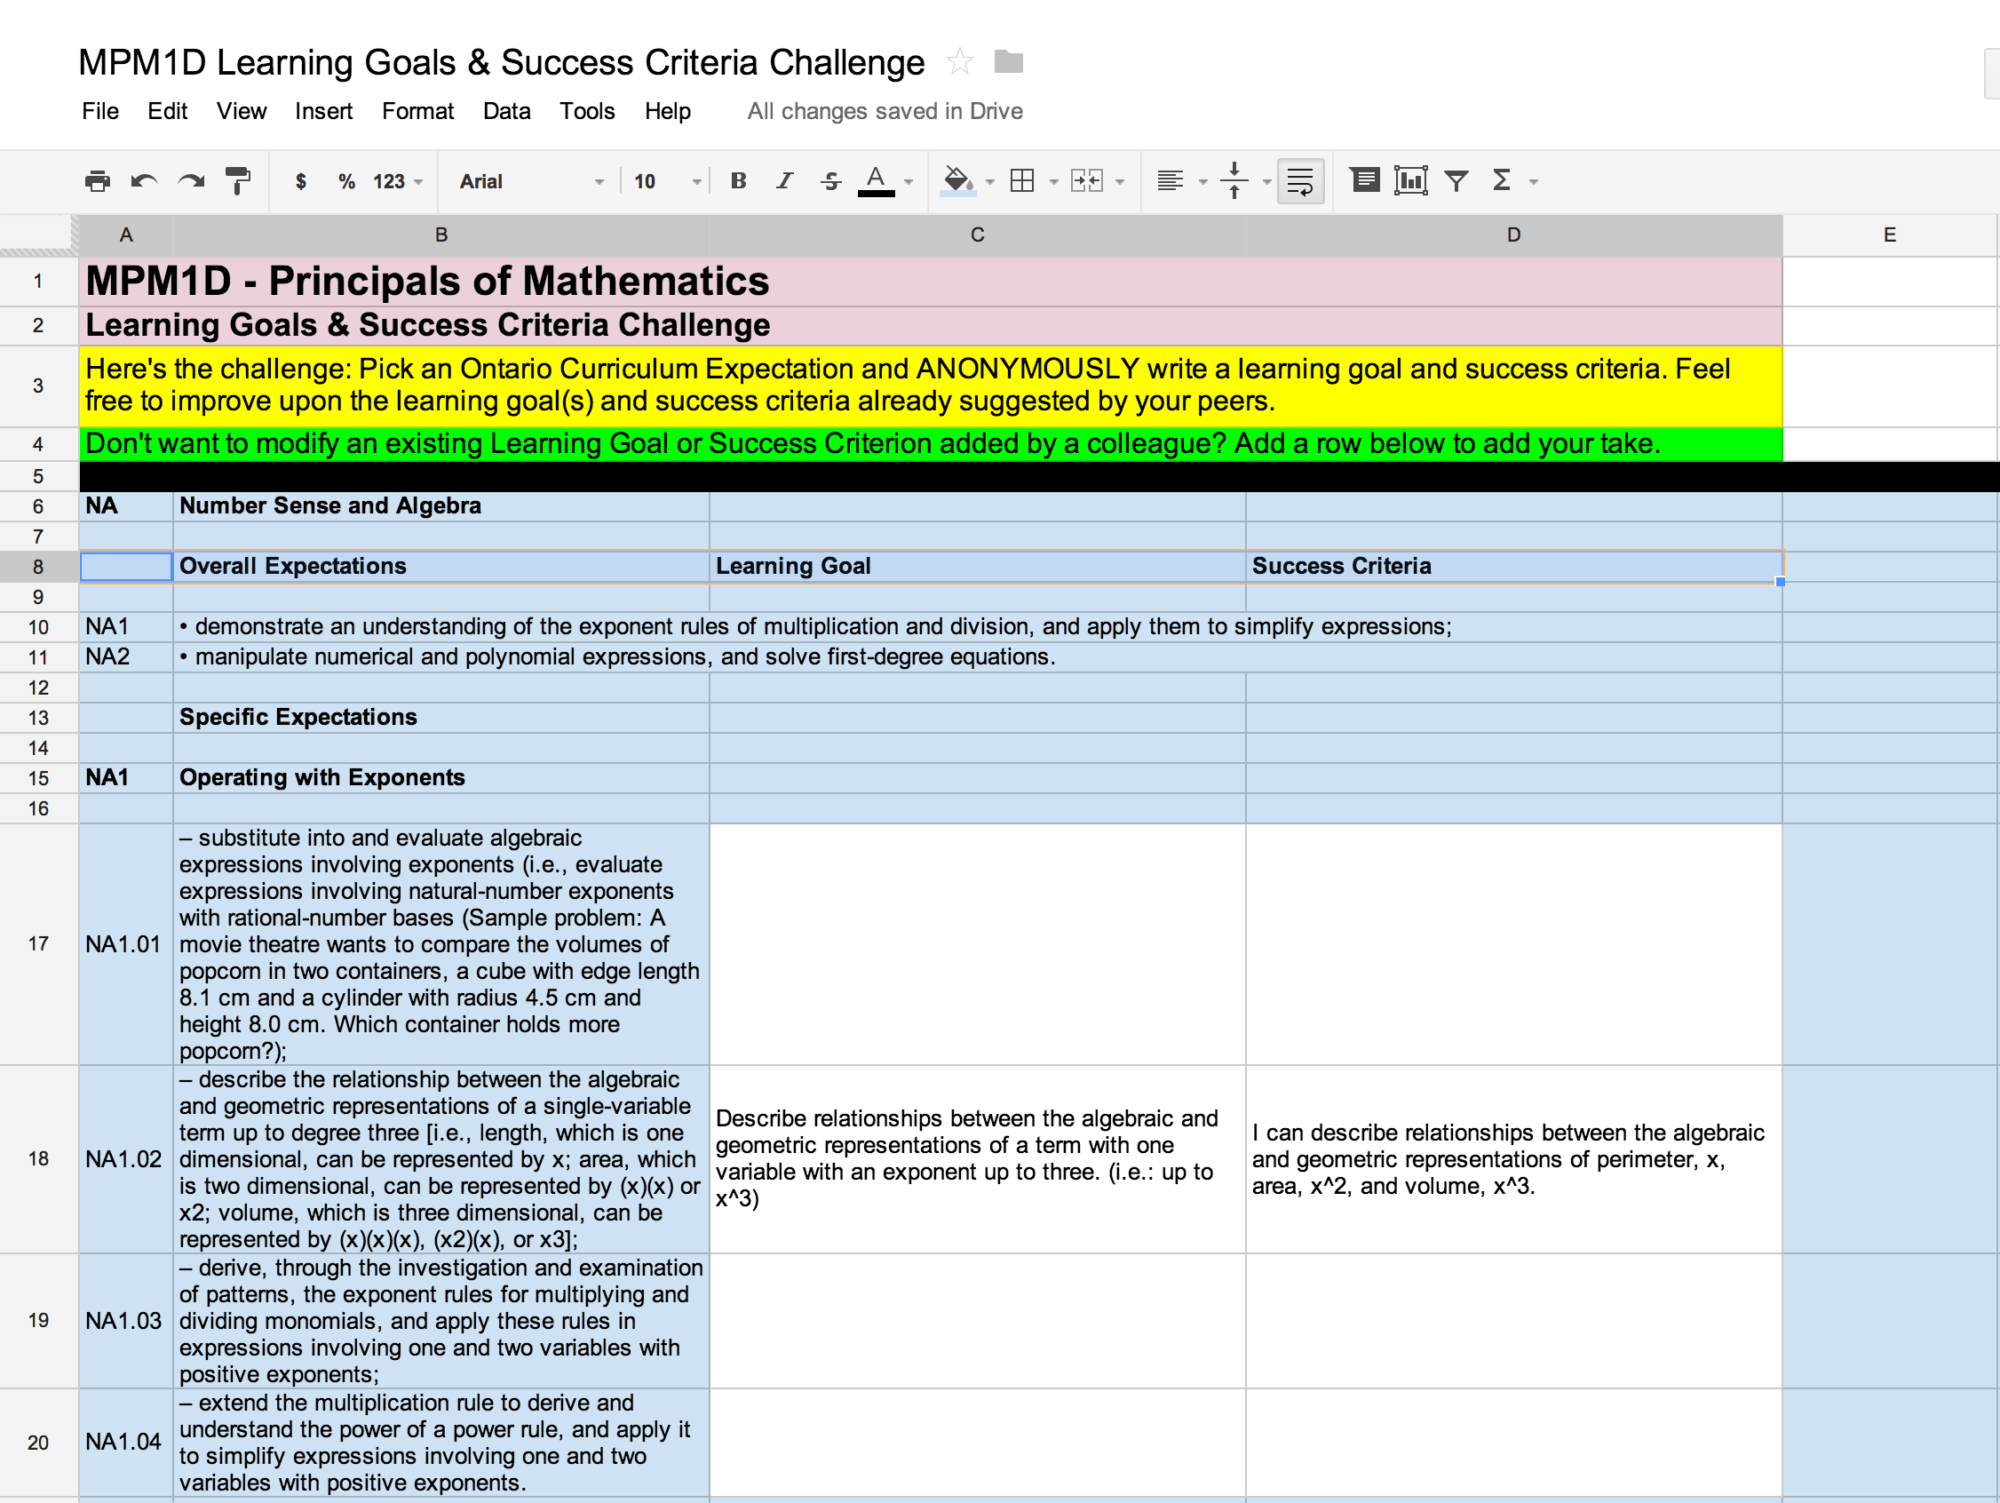 Creating Learning Goals & Success Criteria Collaboratively